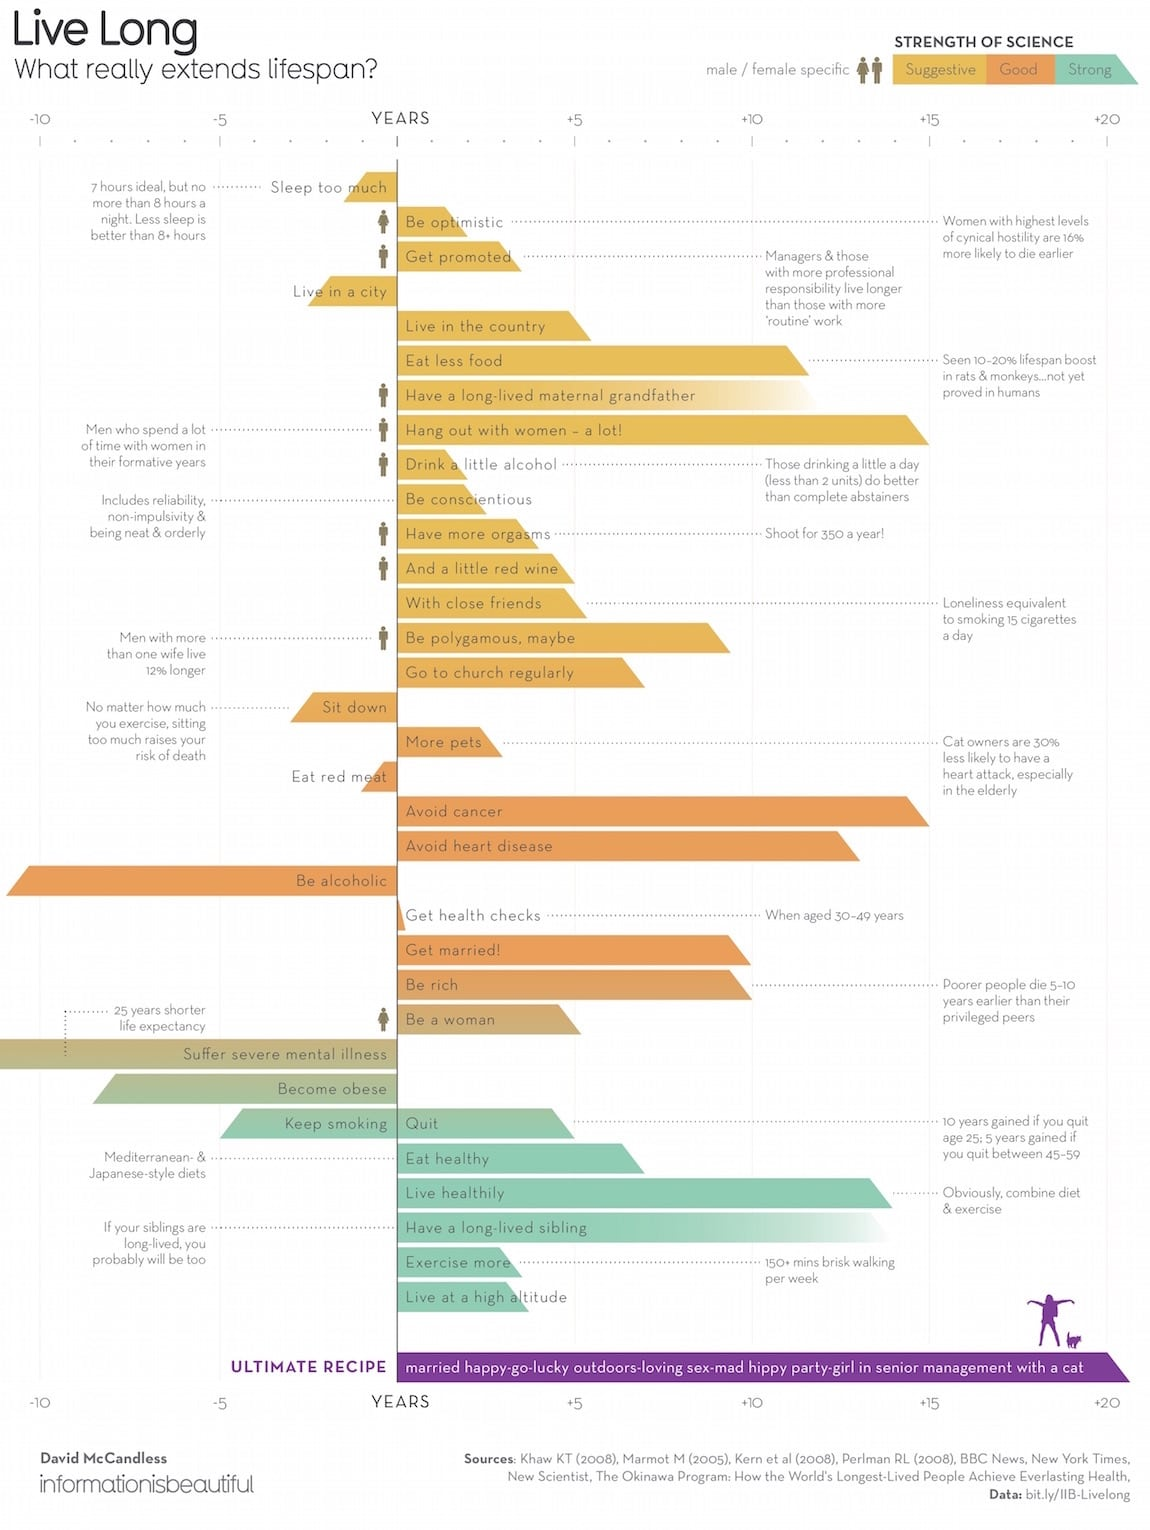 Live Long Extended Lifespan Infographic by David McCandless